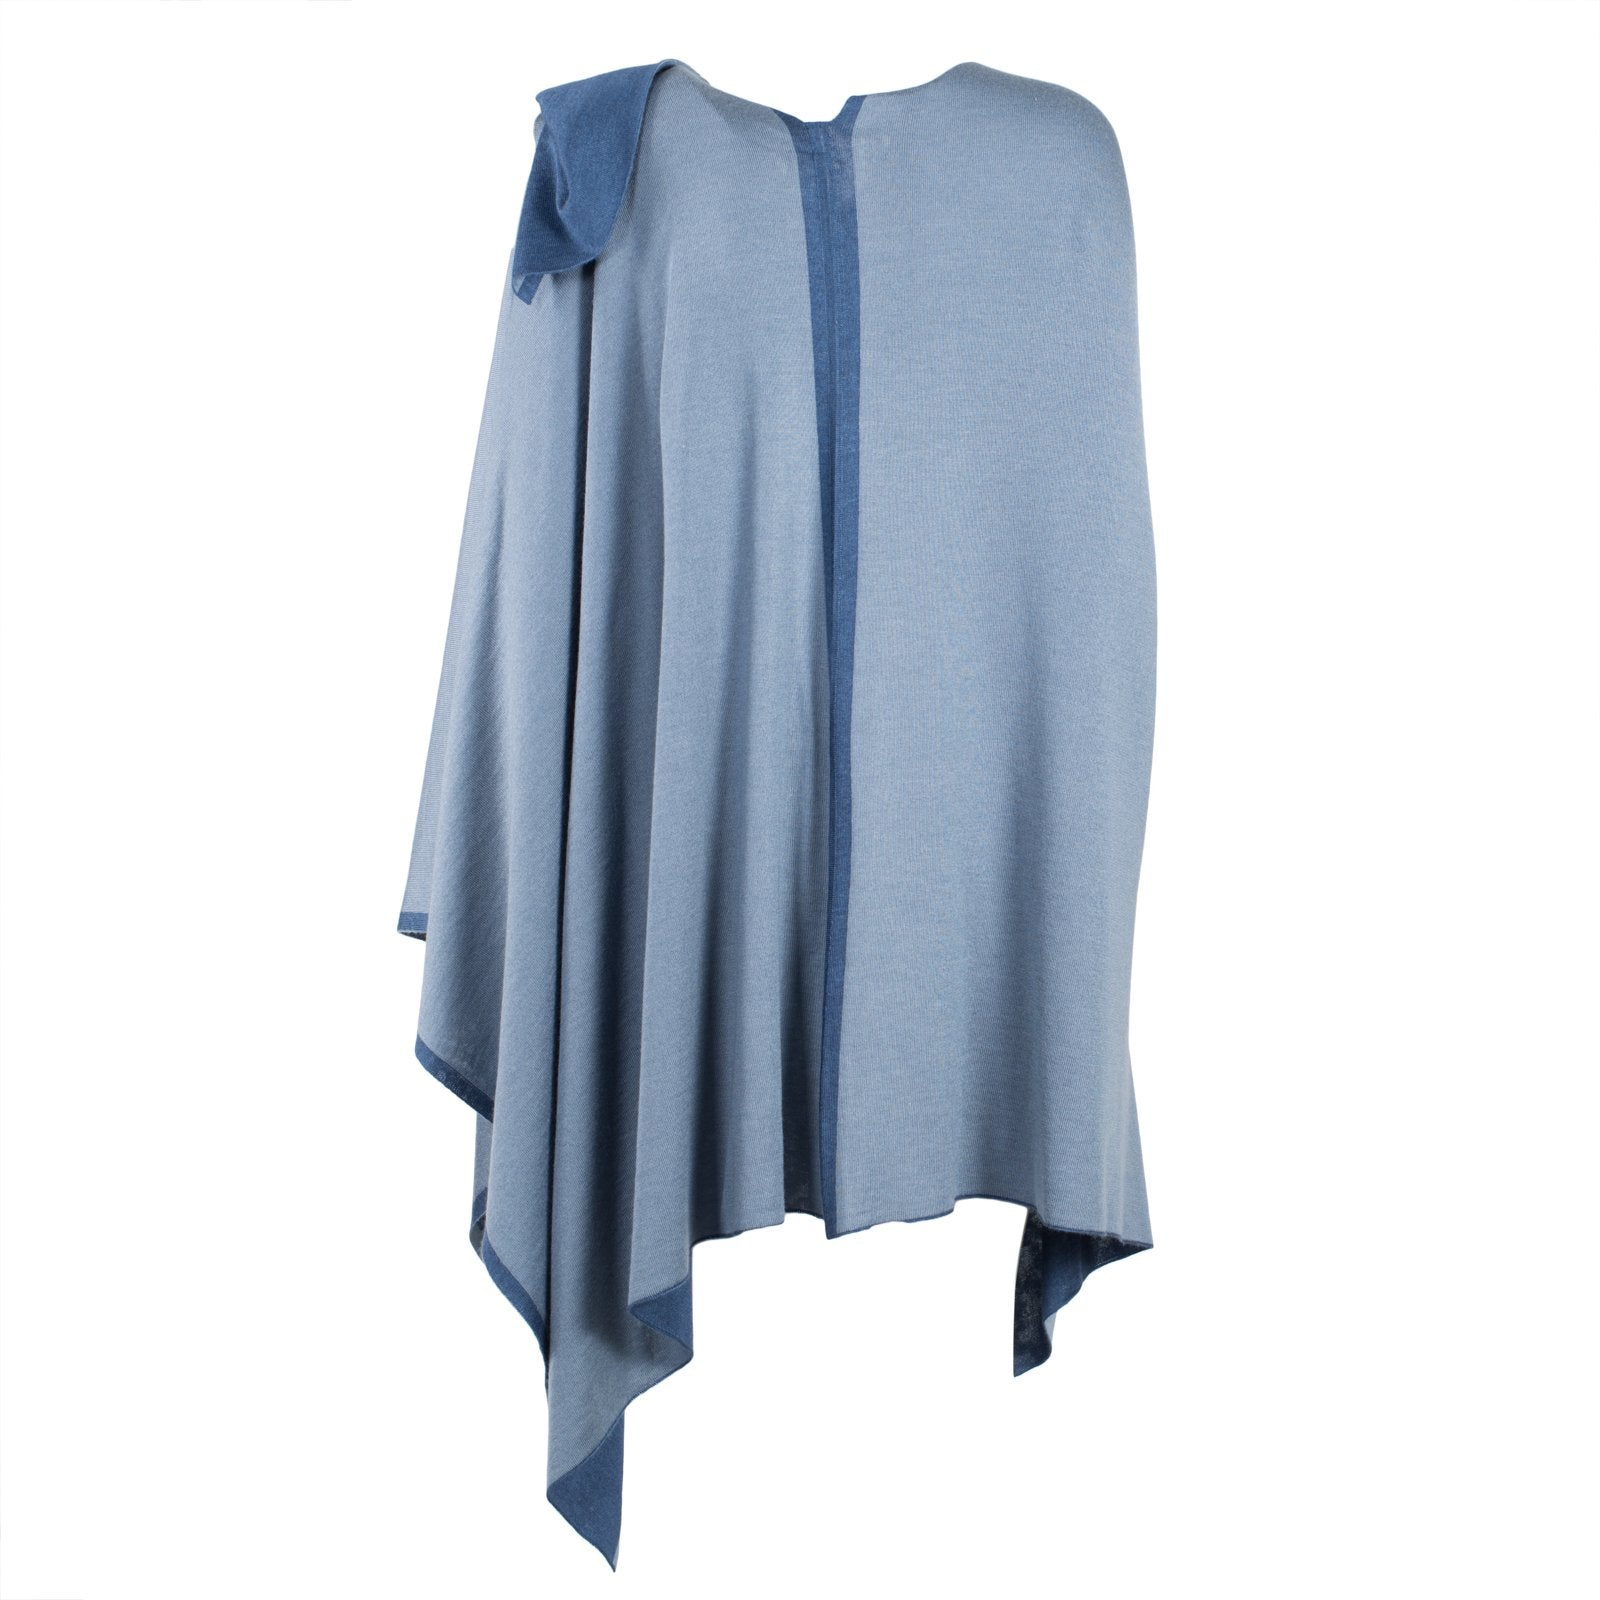 Large Reversible Pashmina Cape in Blues - Jennifer Tattanelli